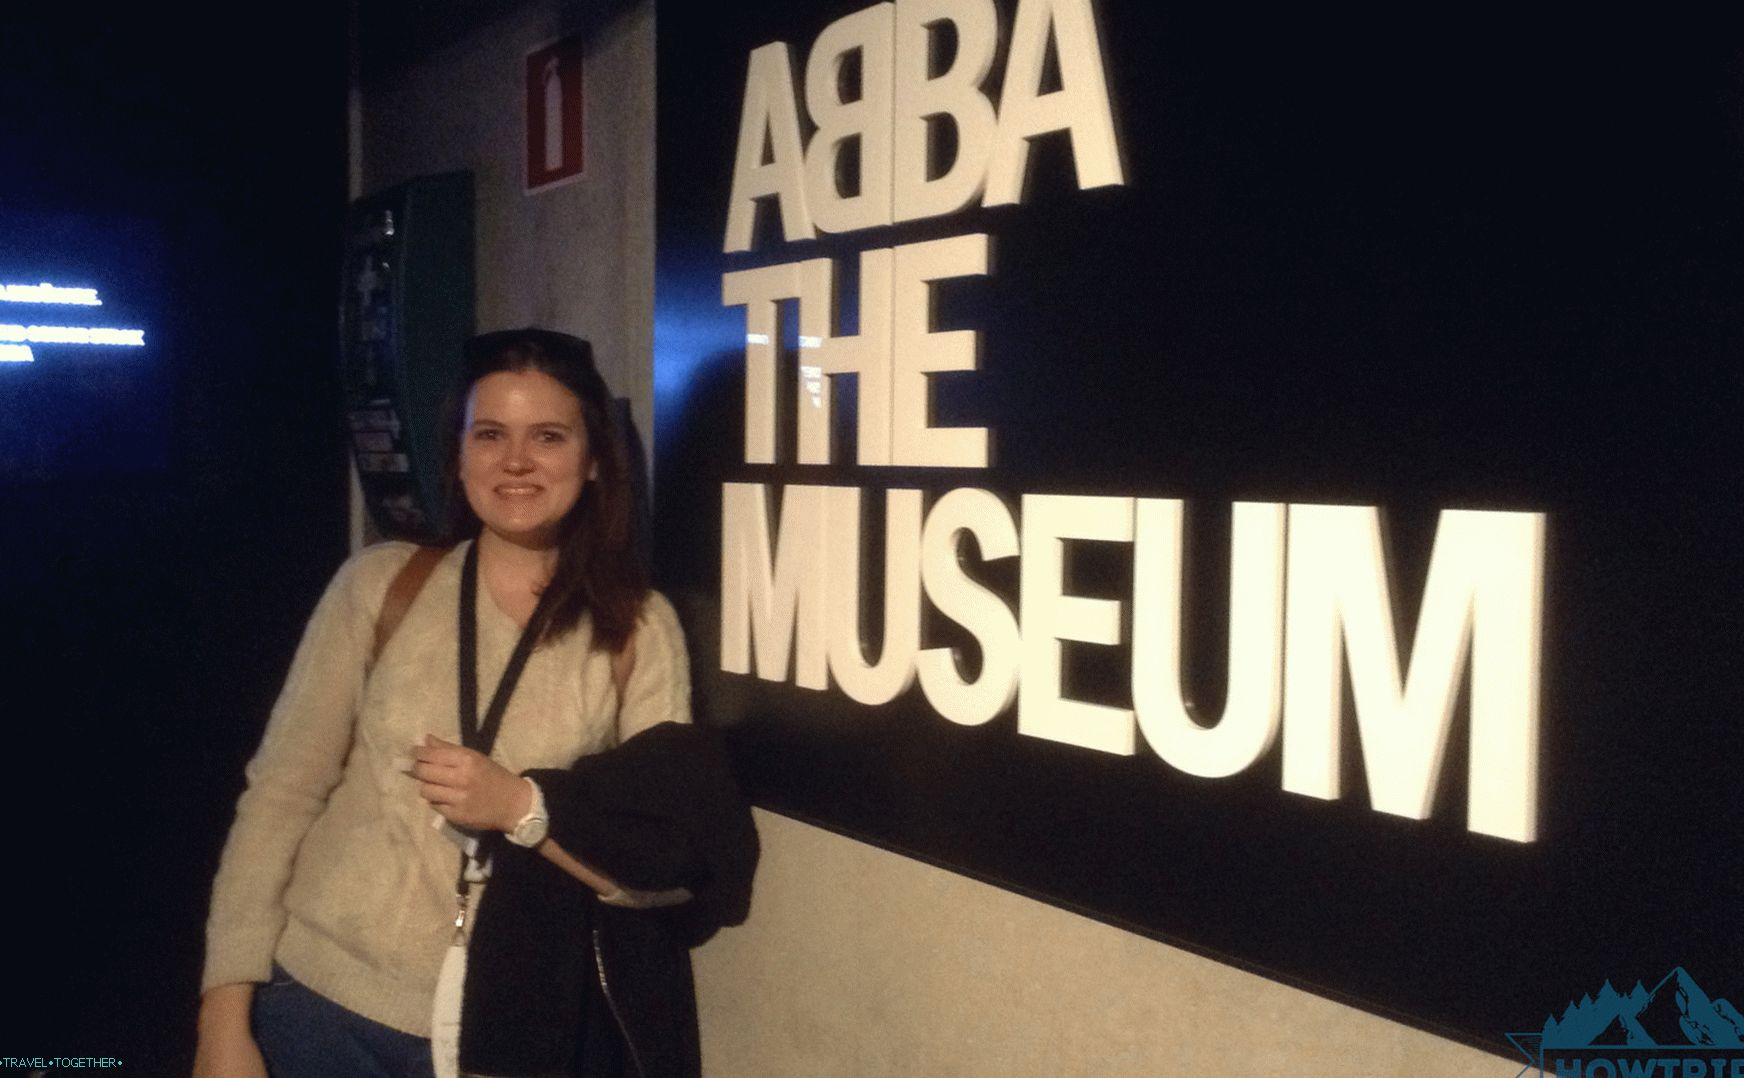 Entry to the Abba Museum